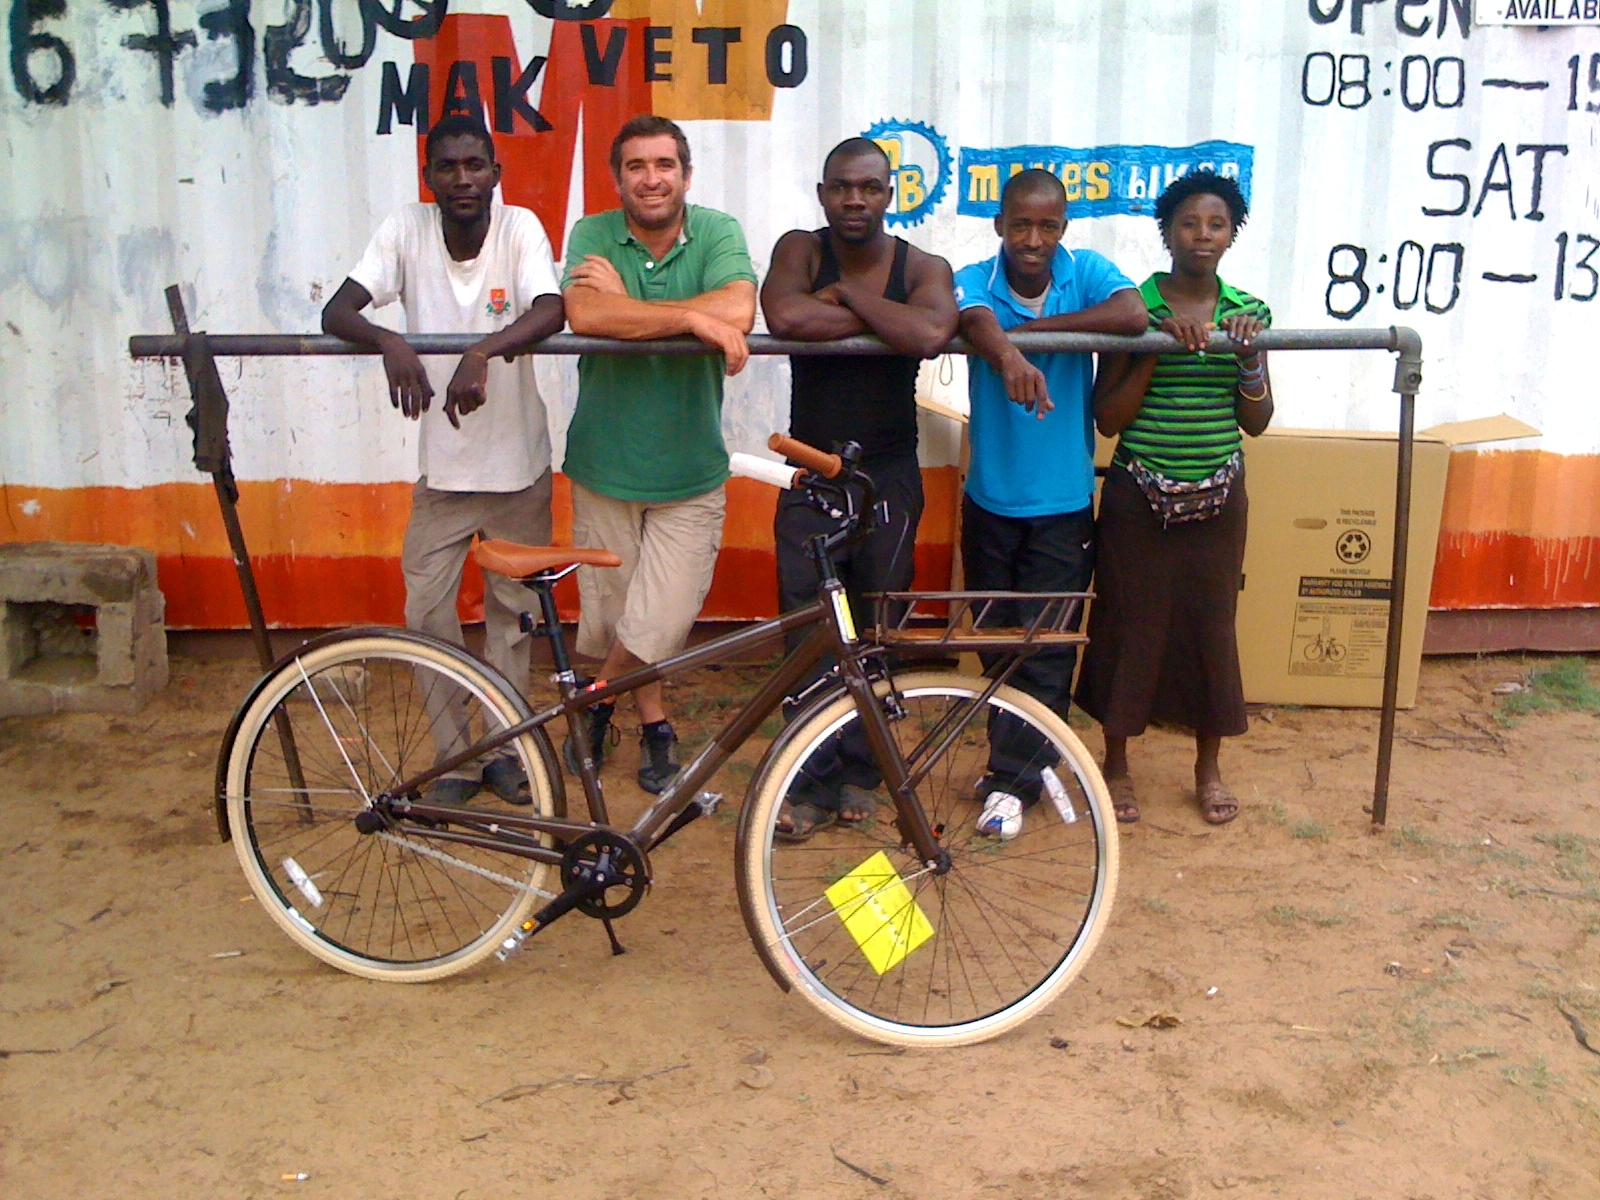 The team! Renewing friendships, partnerships and commitments.